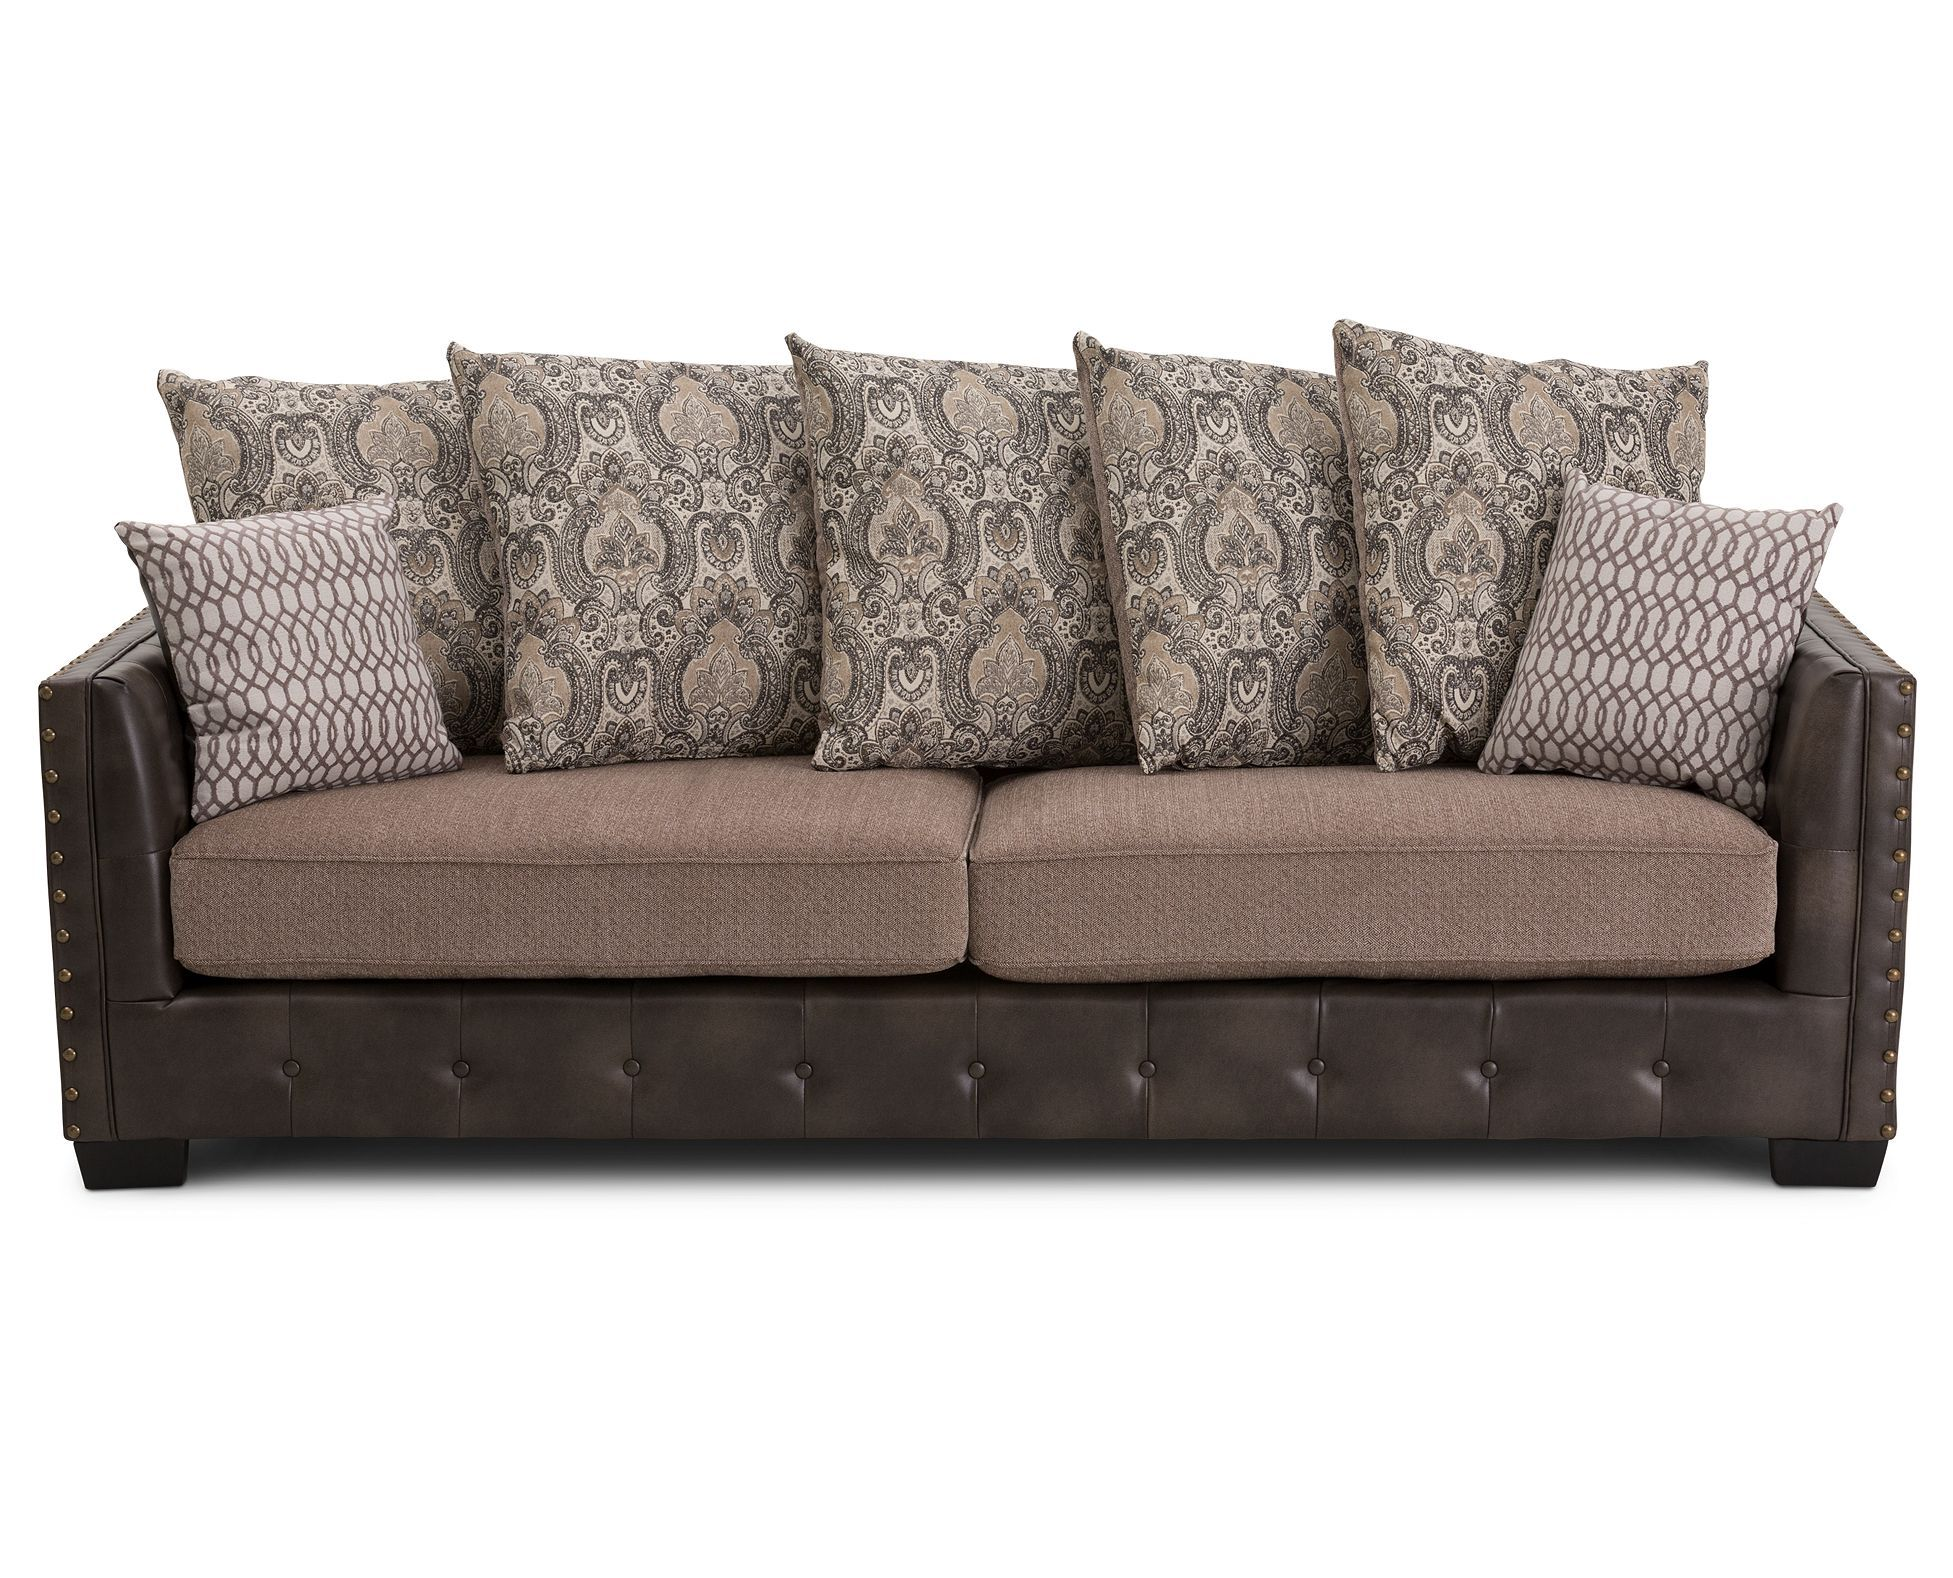 Best The Arlington Heights Sofa Features Button Tufting Chic 400 x 300